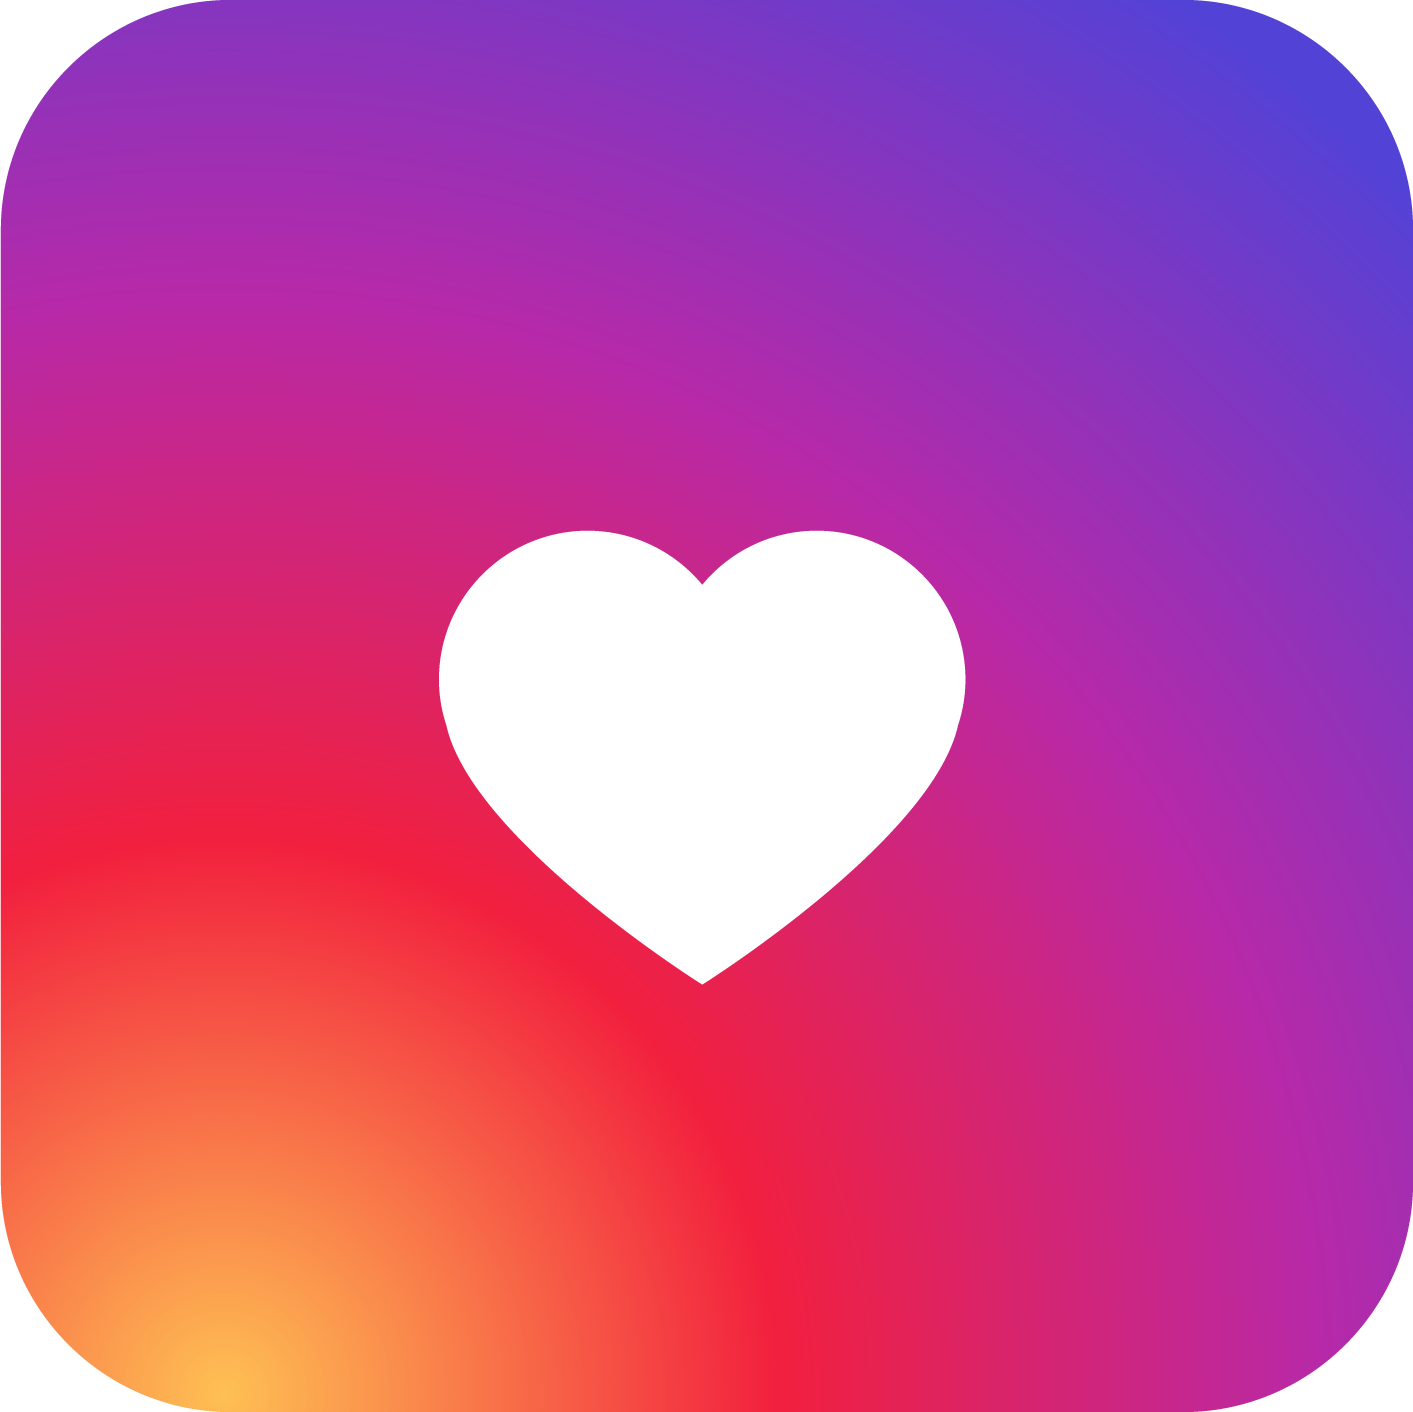 Heart Instagram Free Photo PNG PNG Image